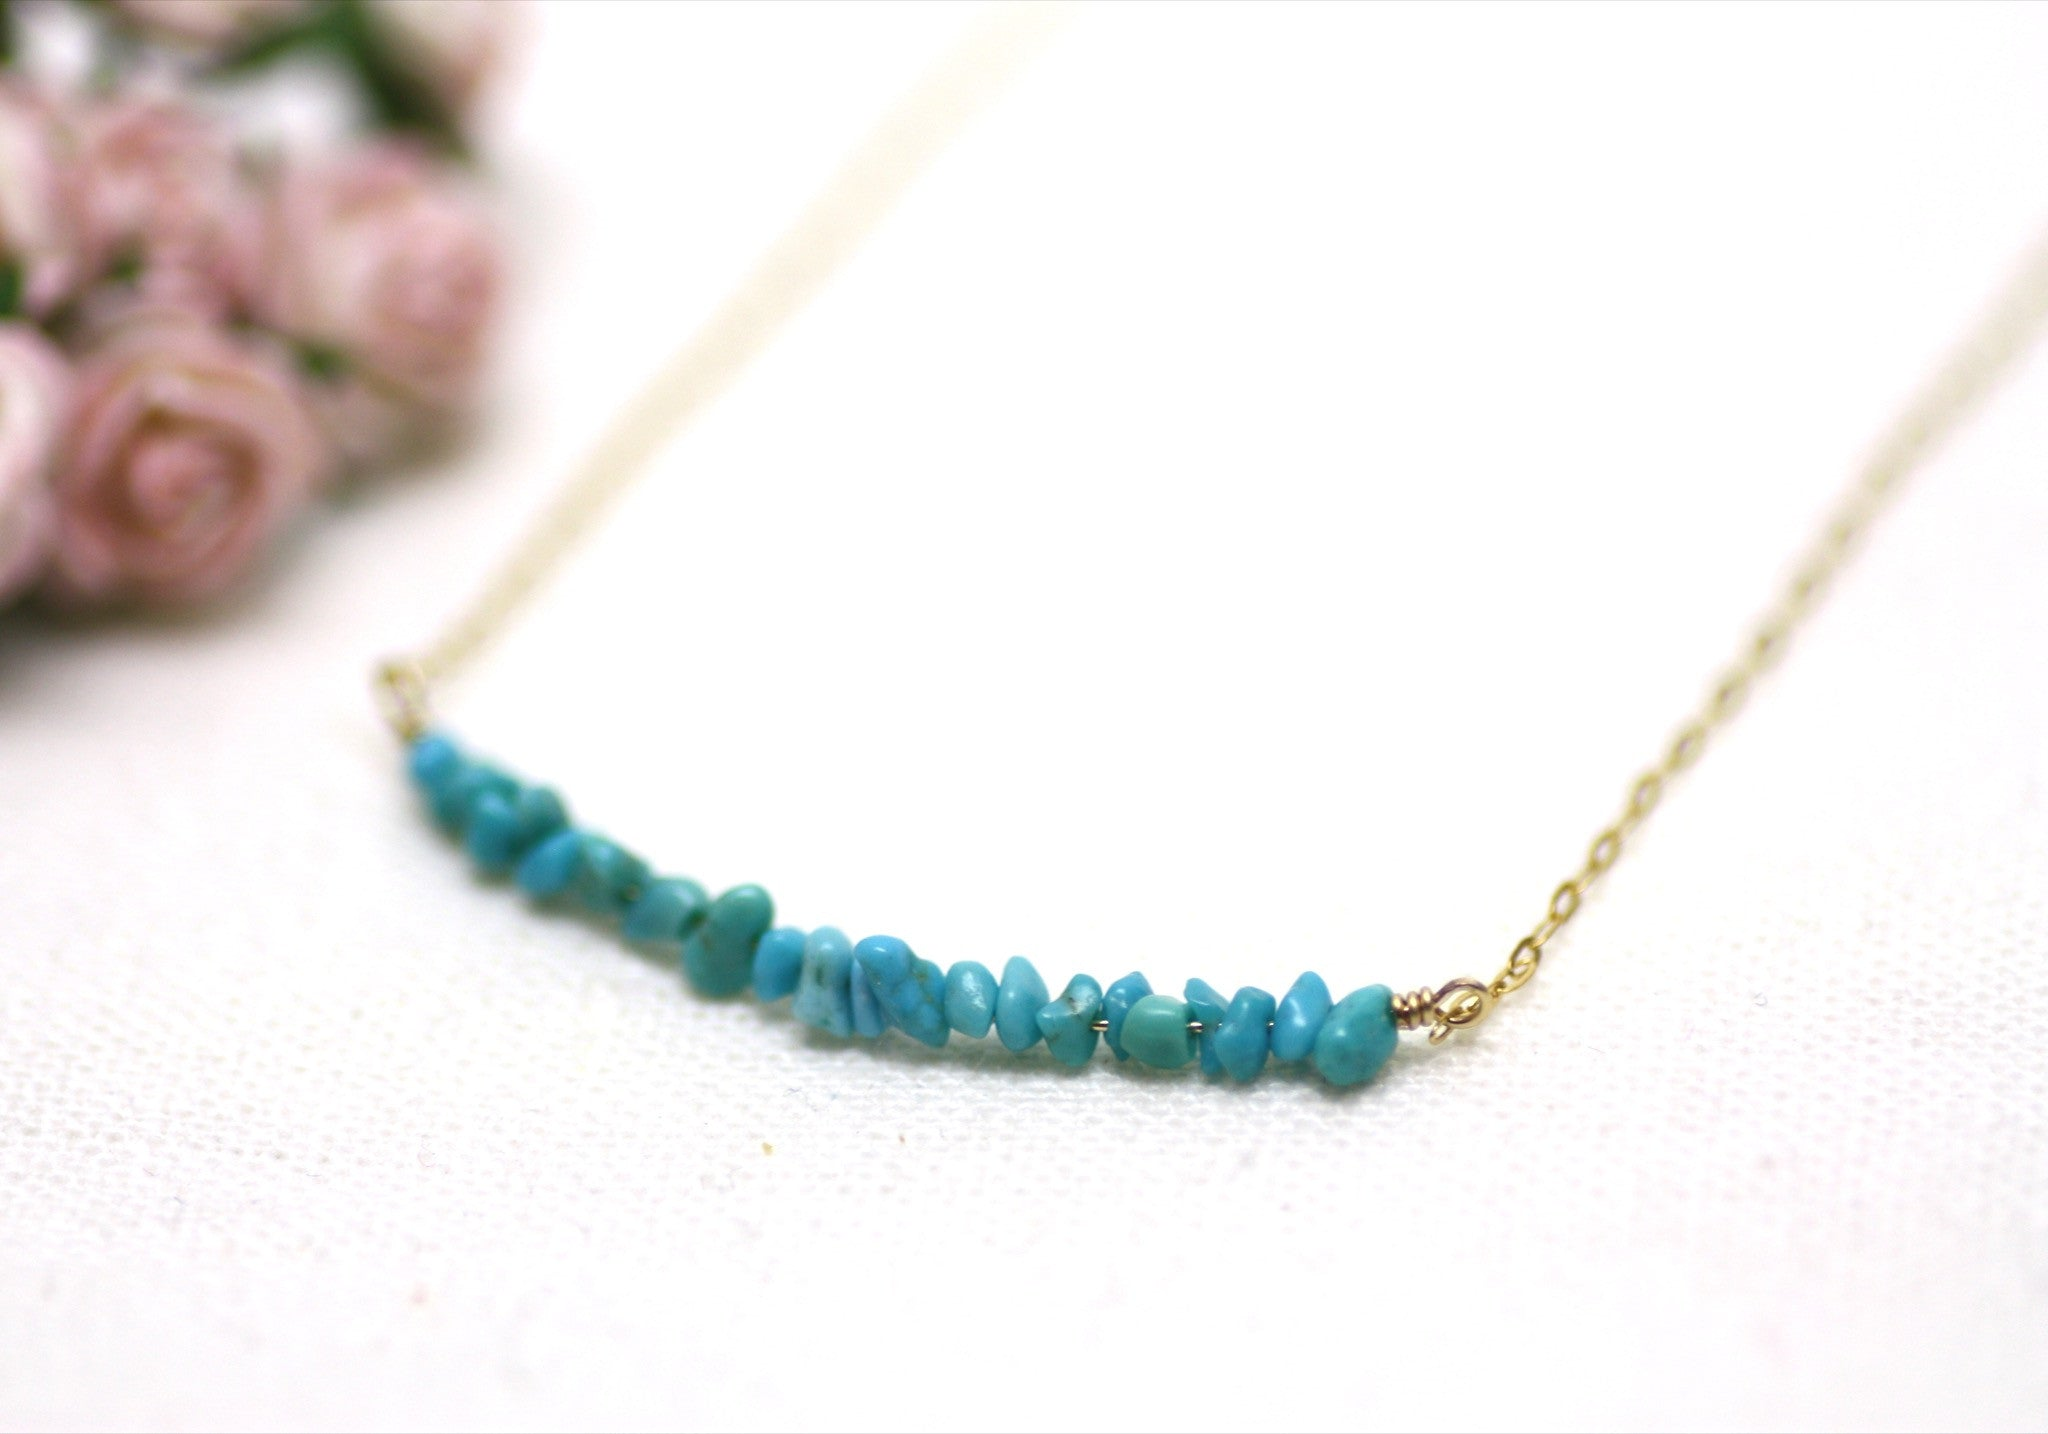 Turquoise Bar Necklaces in Gold — P'tite Jolie